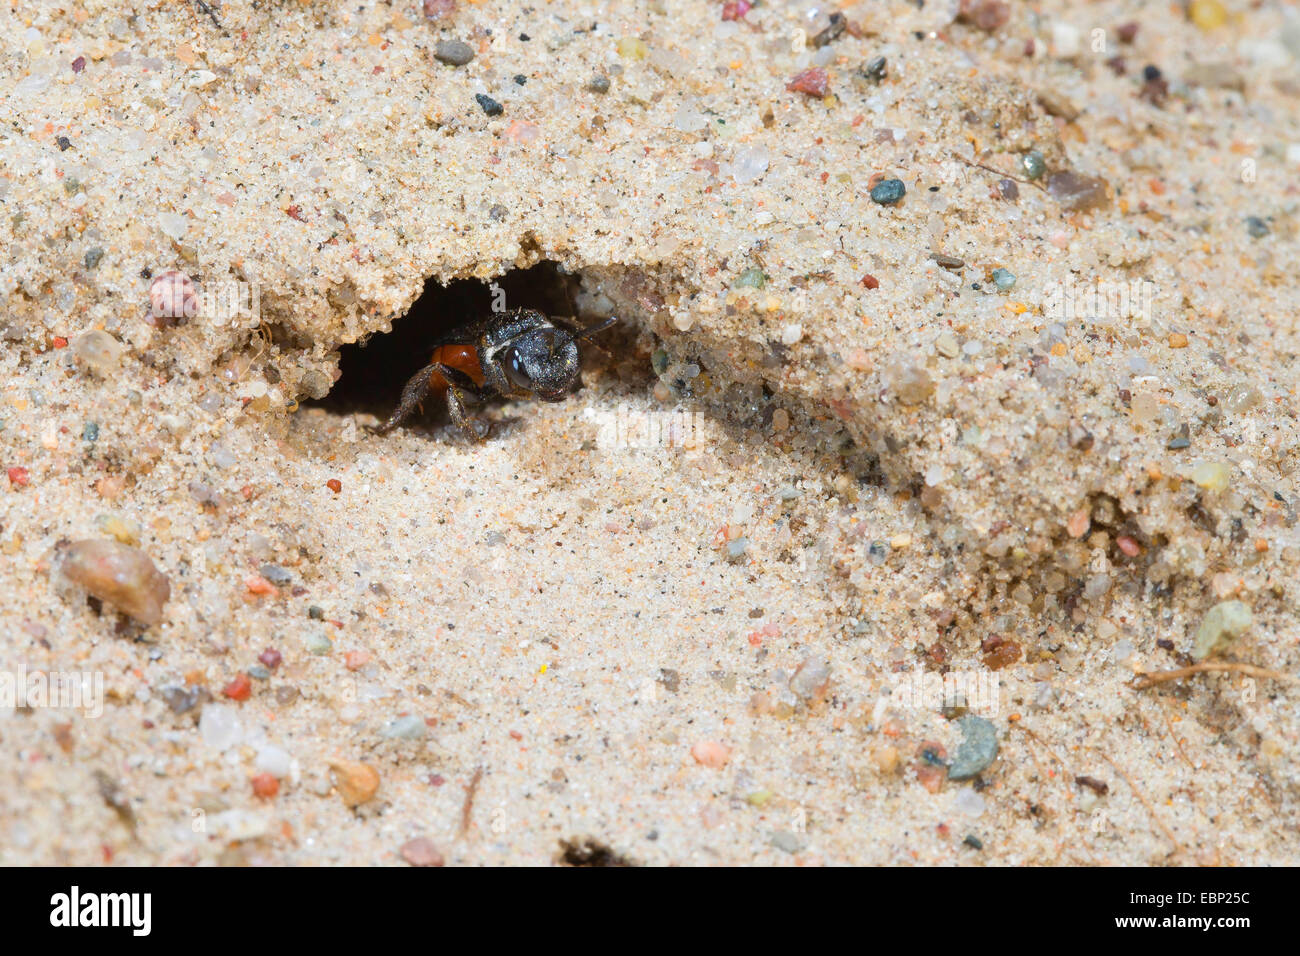 Sweat bee, Halictid Bee (Sphecodes albilabris, Sphecodes fuscipennis), in a burrow in the ground, Germany - Stock Image